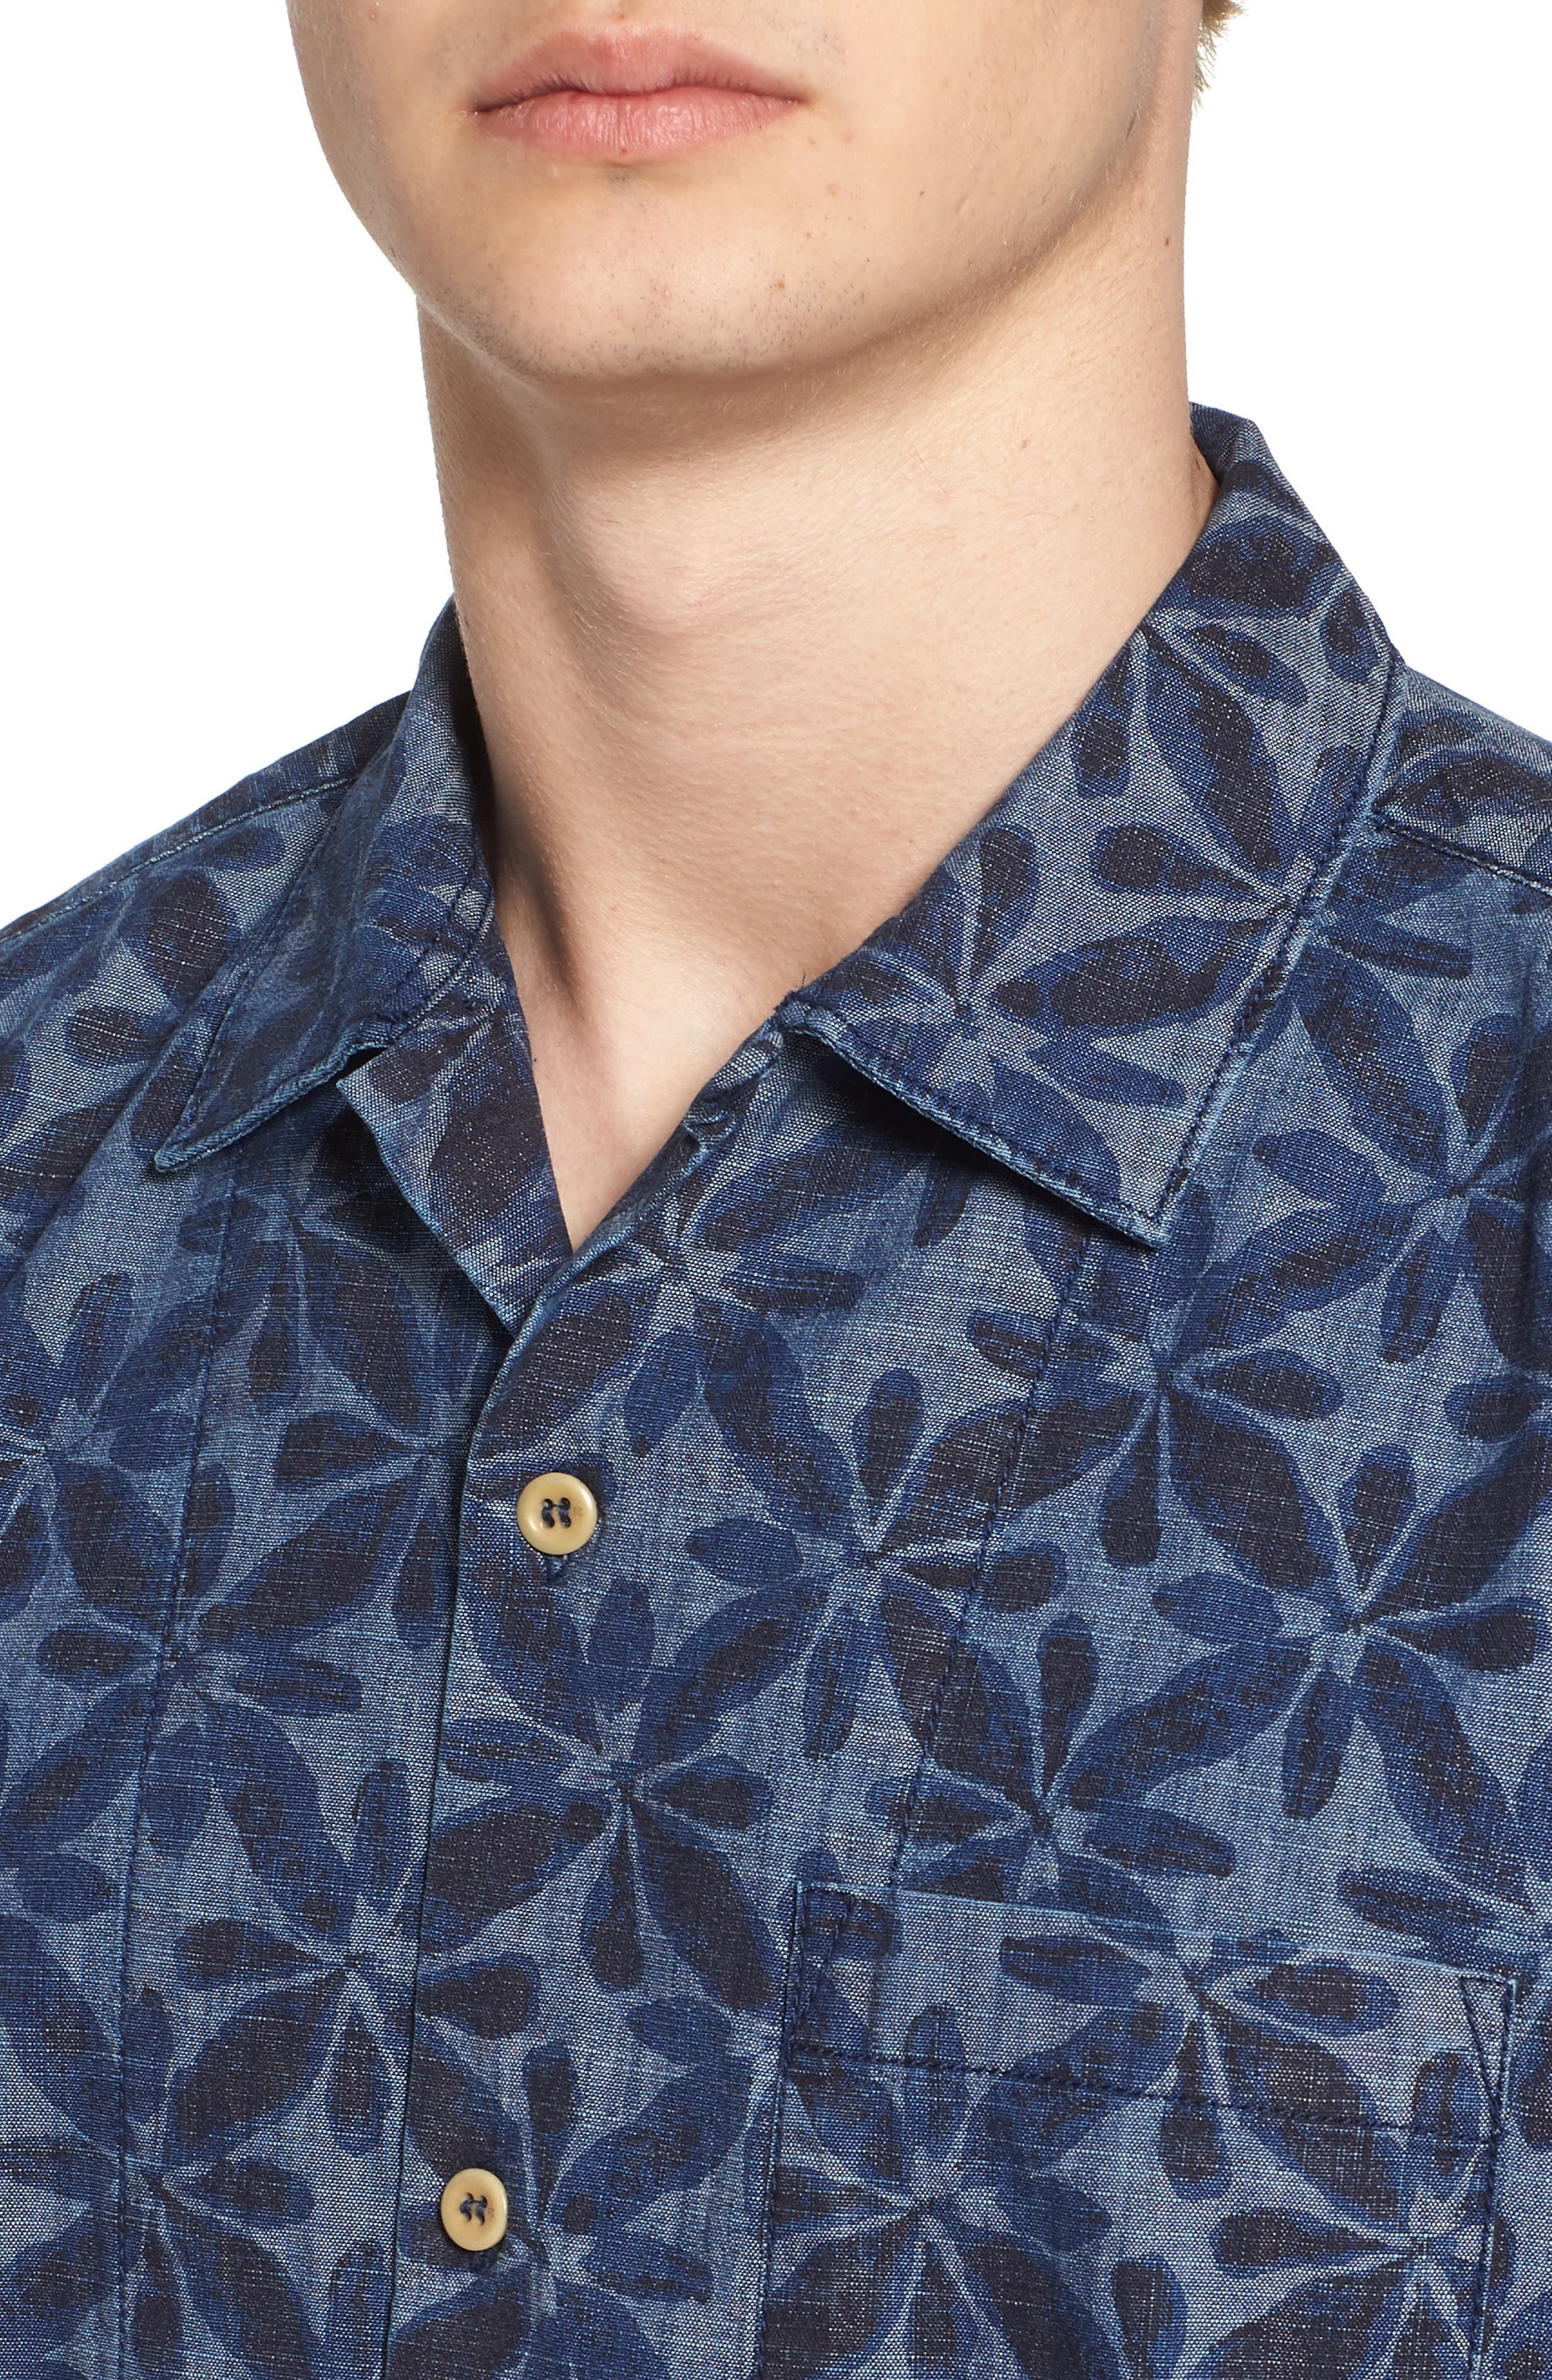 Franju Floral Slim Fit Woven Shirt,                             Alternate thumbnail 4, color,                             Rinse And Softener